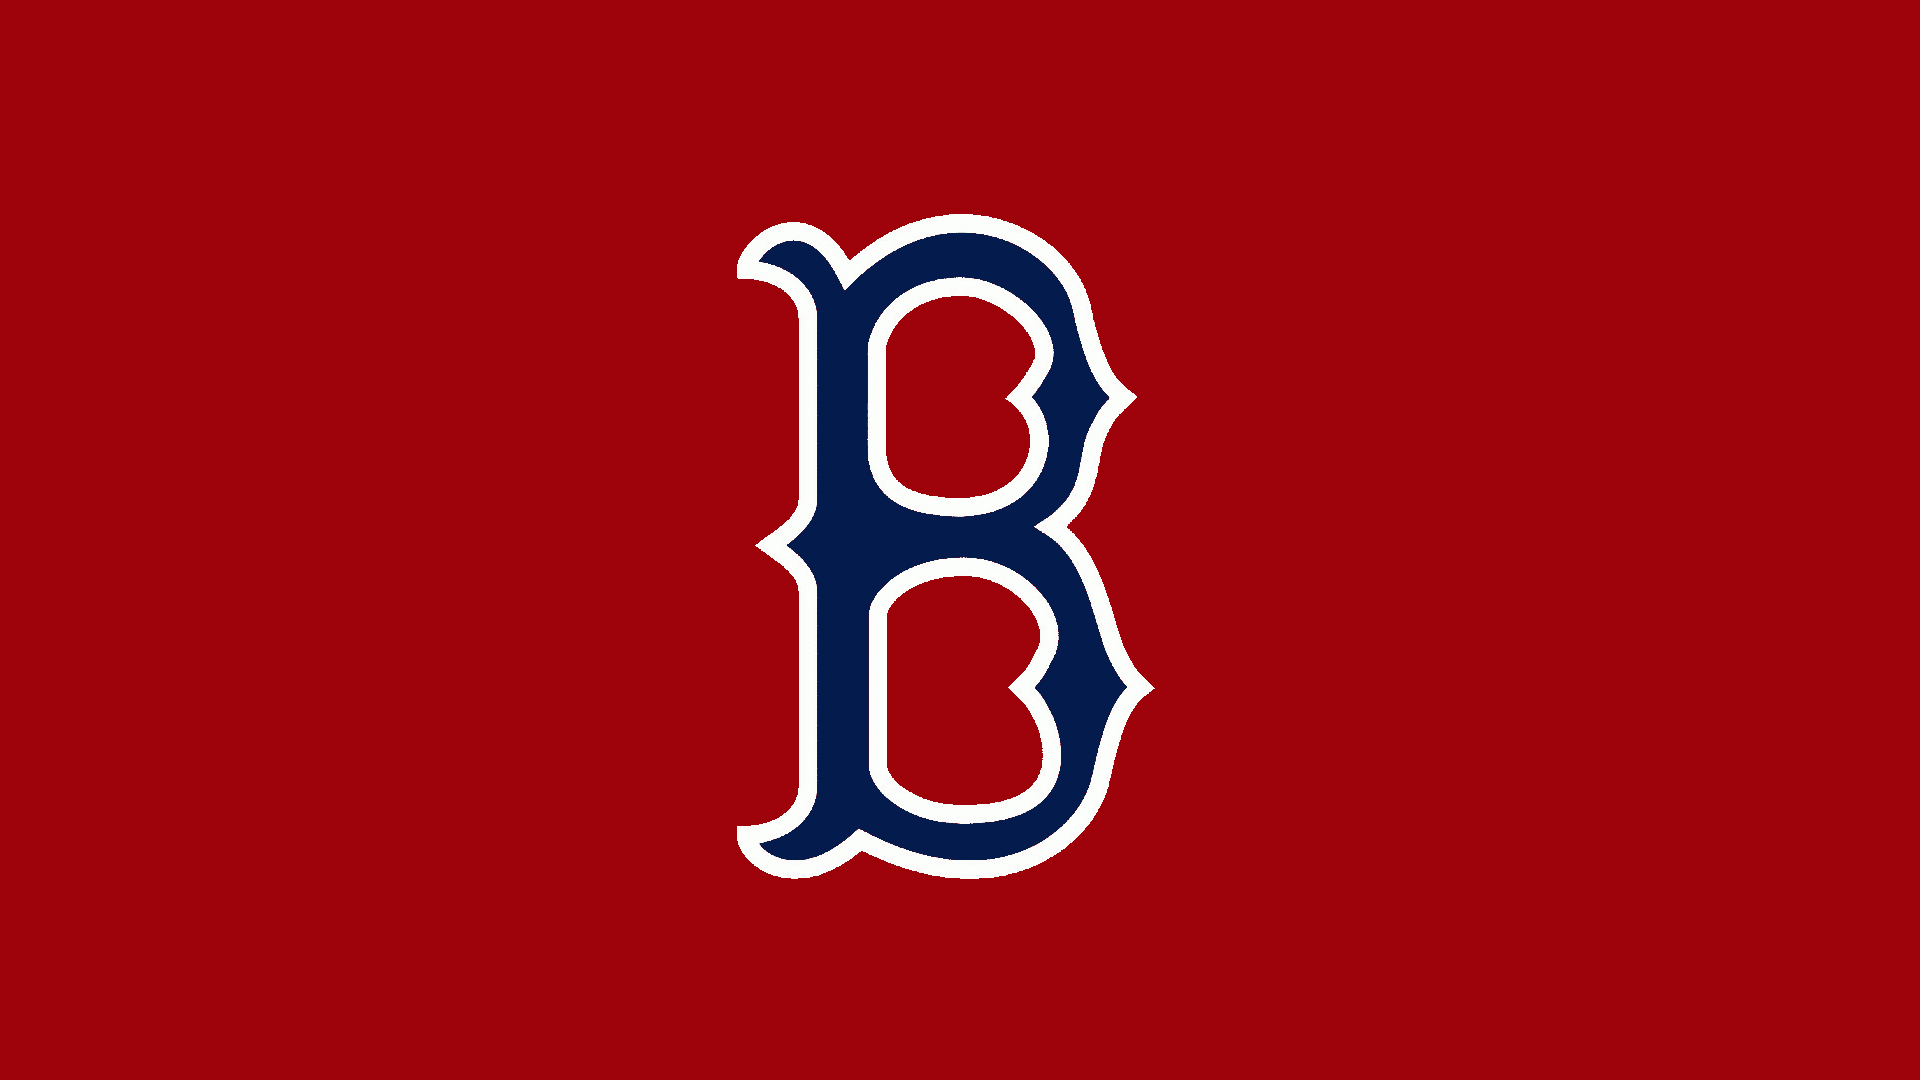 Red Sox Wallpaper 1920x1080   Boston Red Sox Wallpaper 8502658 1920x1080